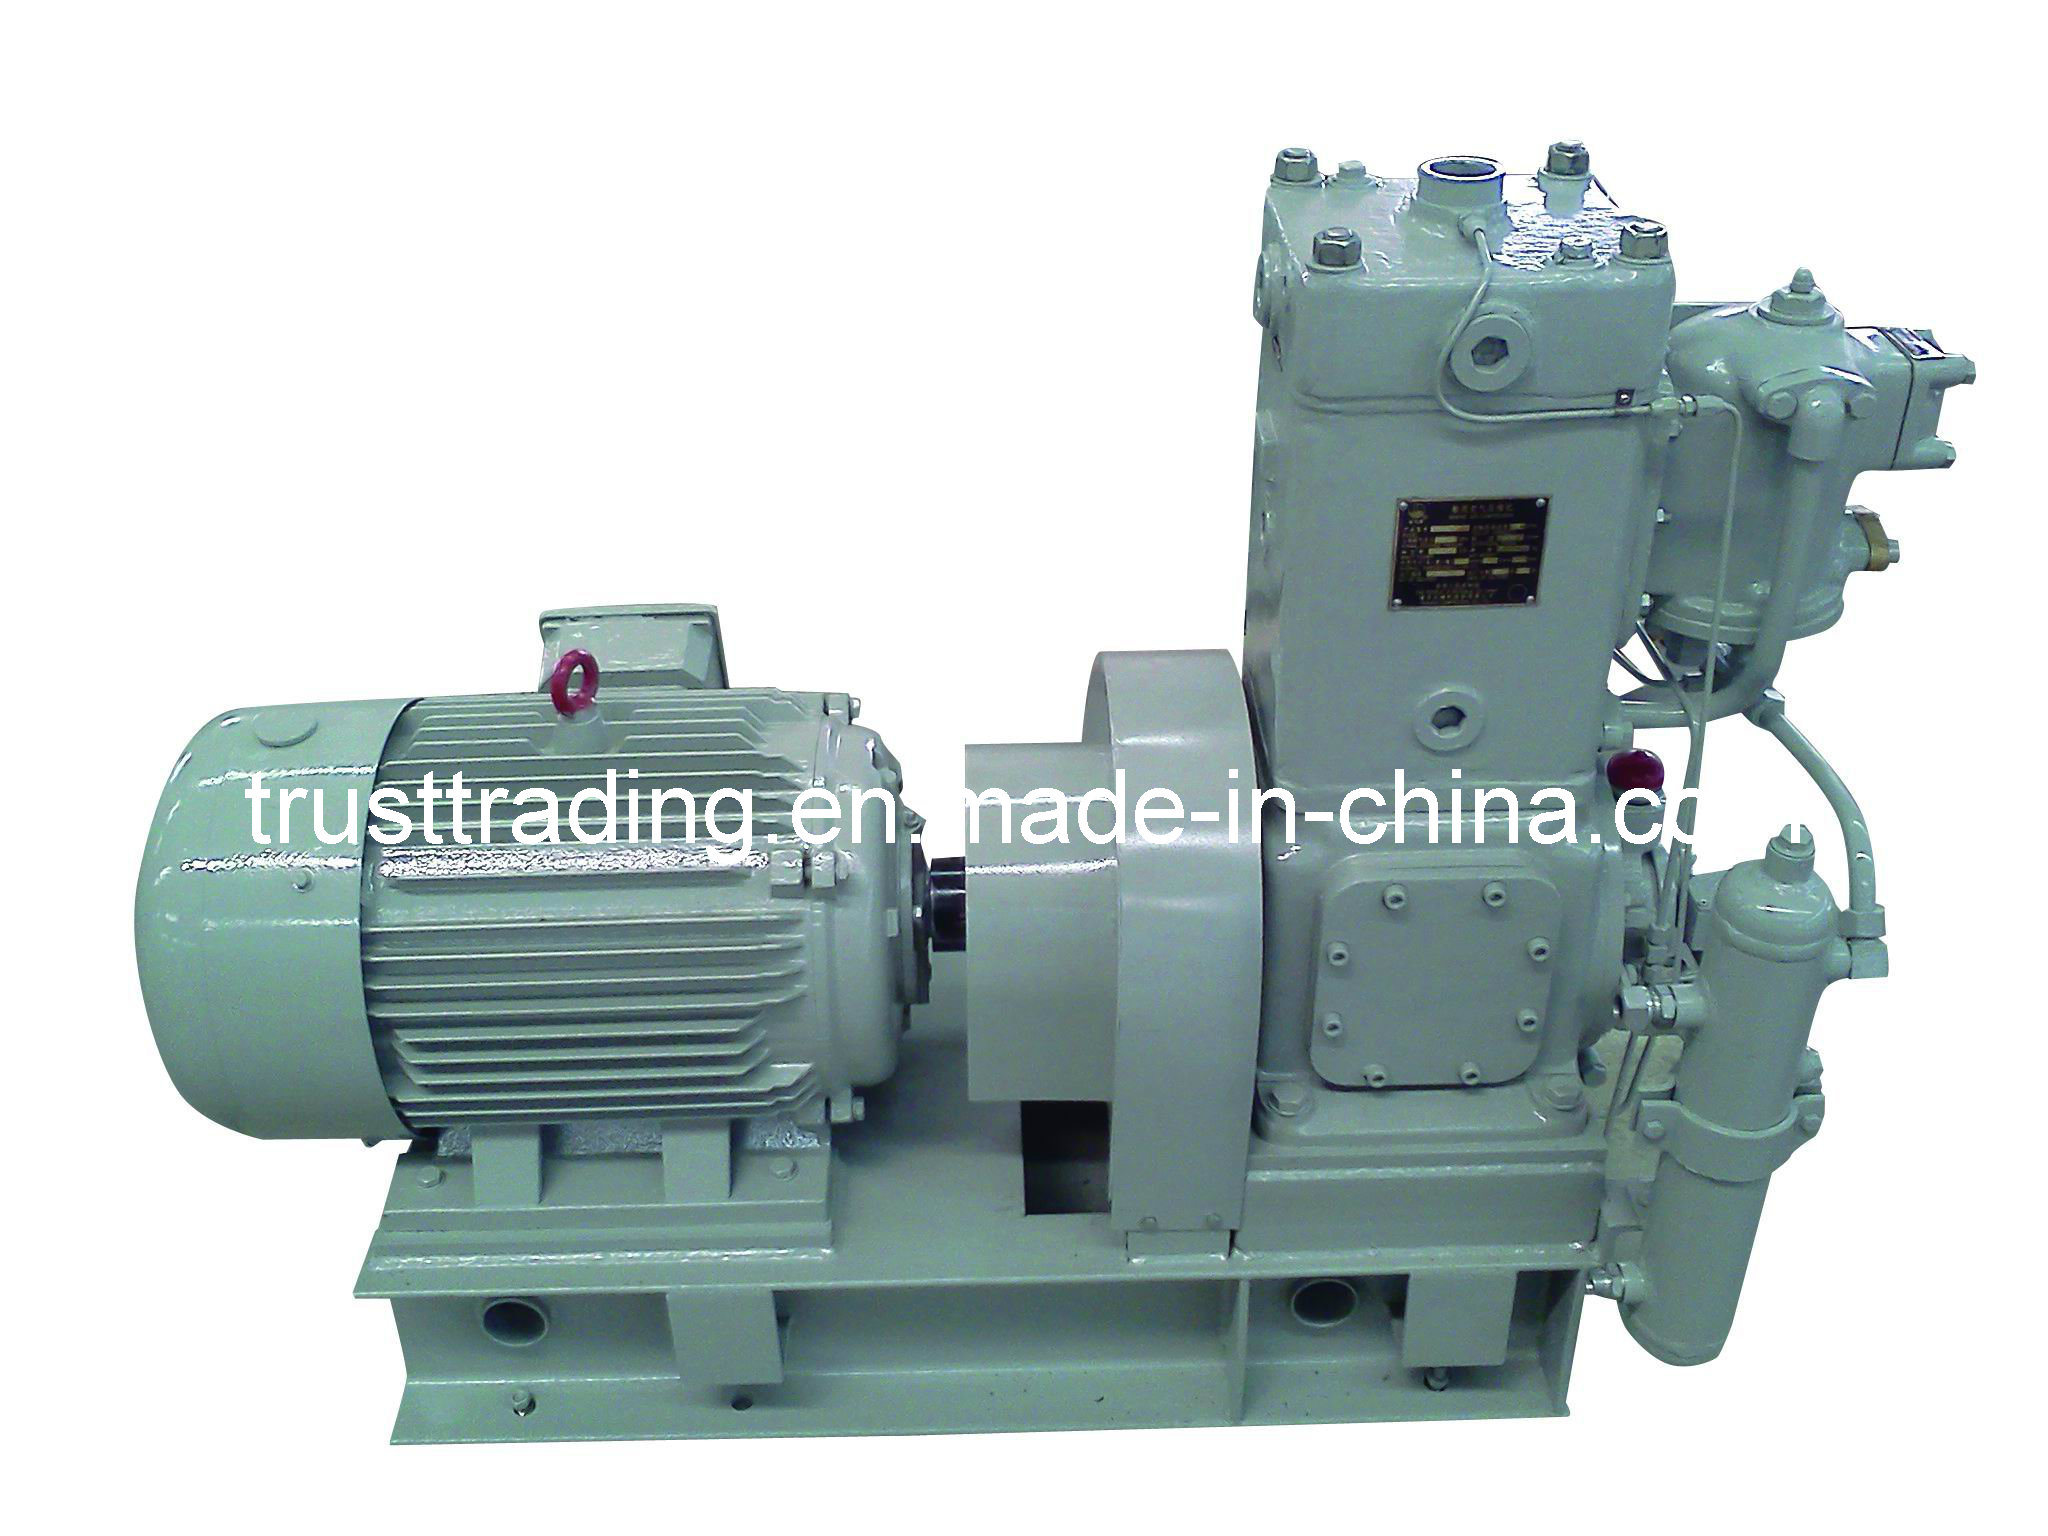 China Marine Low Pressure Industrial Air Compressor - China